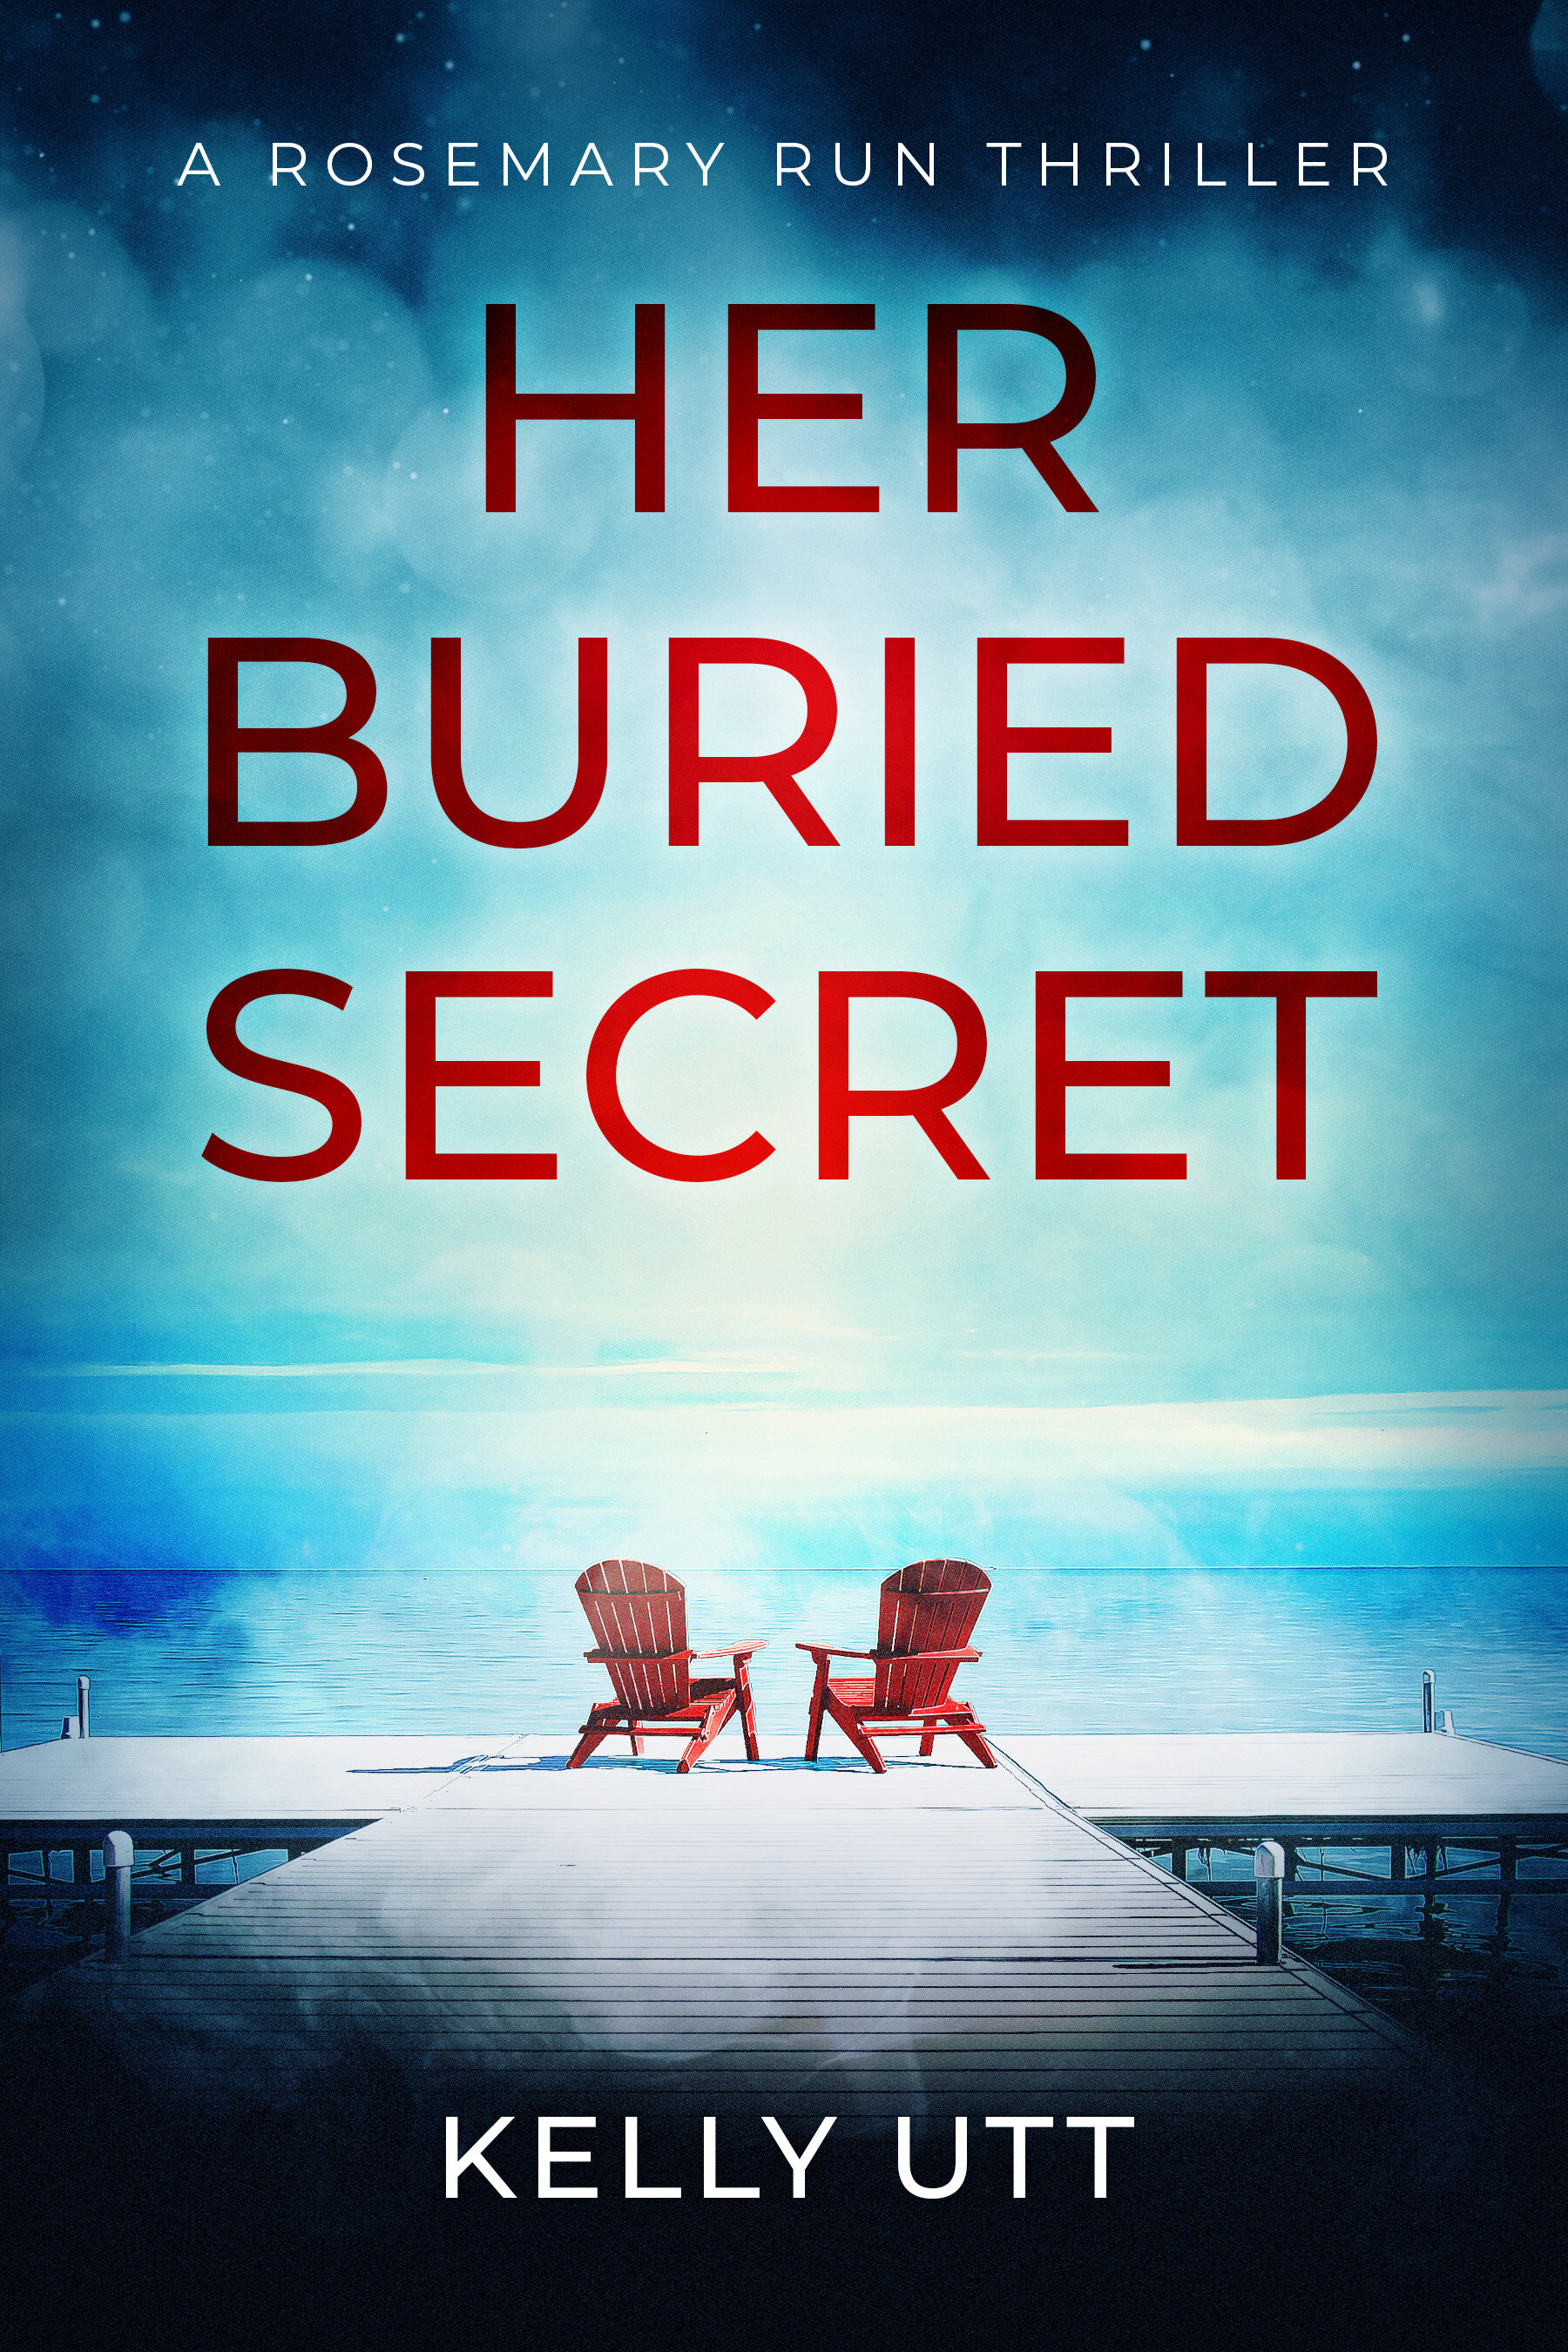 her-buried-secret-by-kelly-utt.jpg